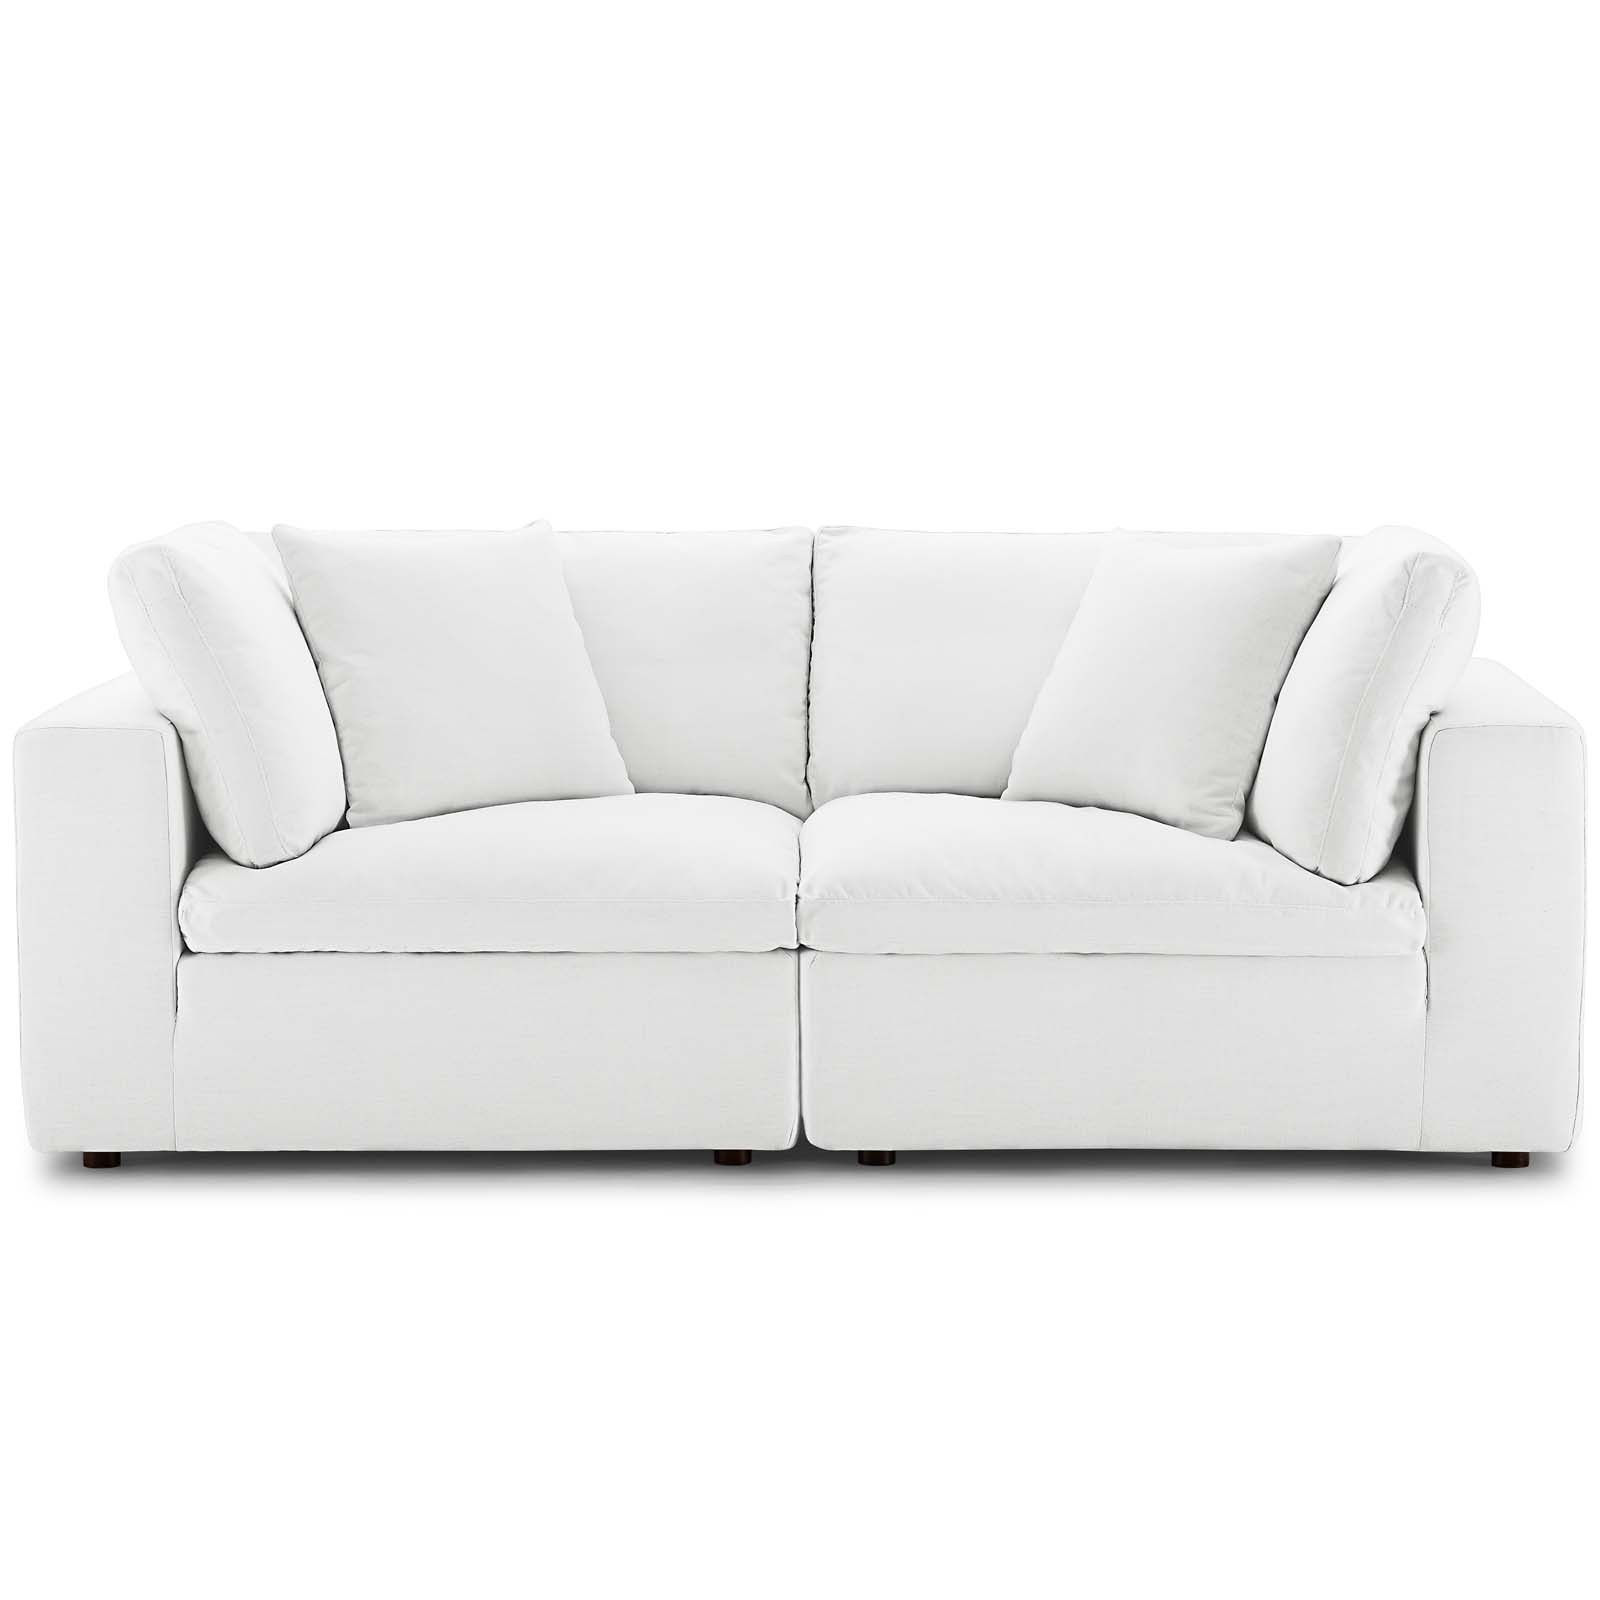 Commix White Down Filled Overstuffed 2 Piece Sectional Pertaining To Down Filled Sectional Sofas (View 12 of 15)